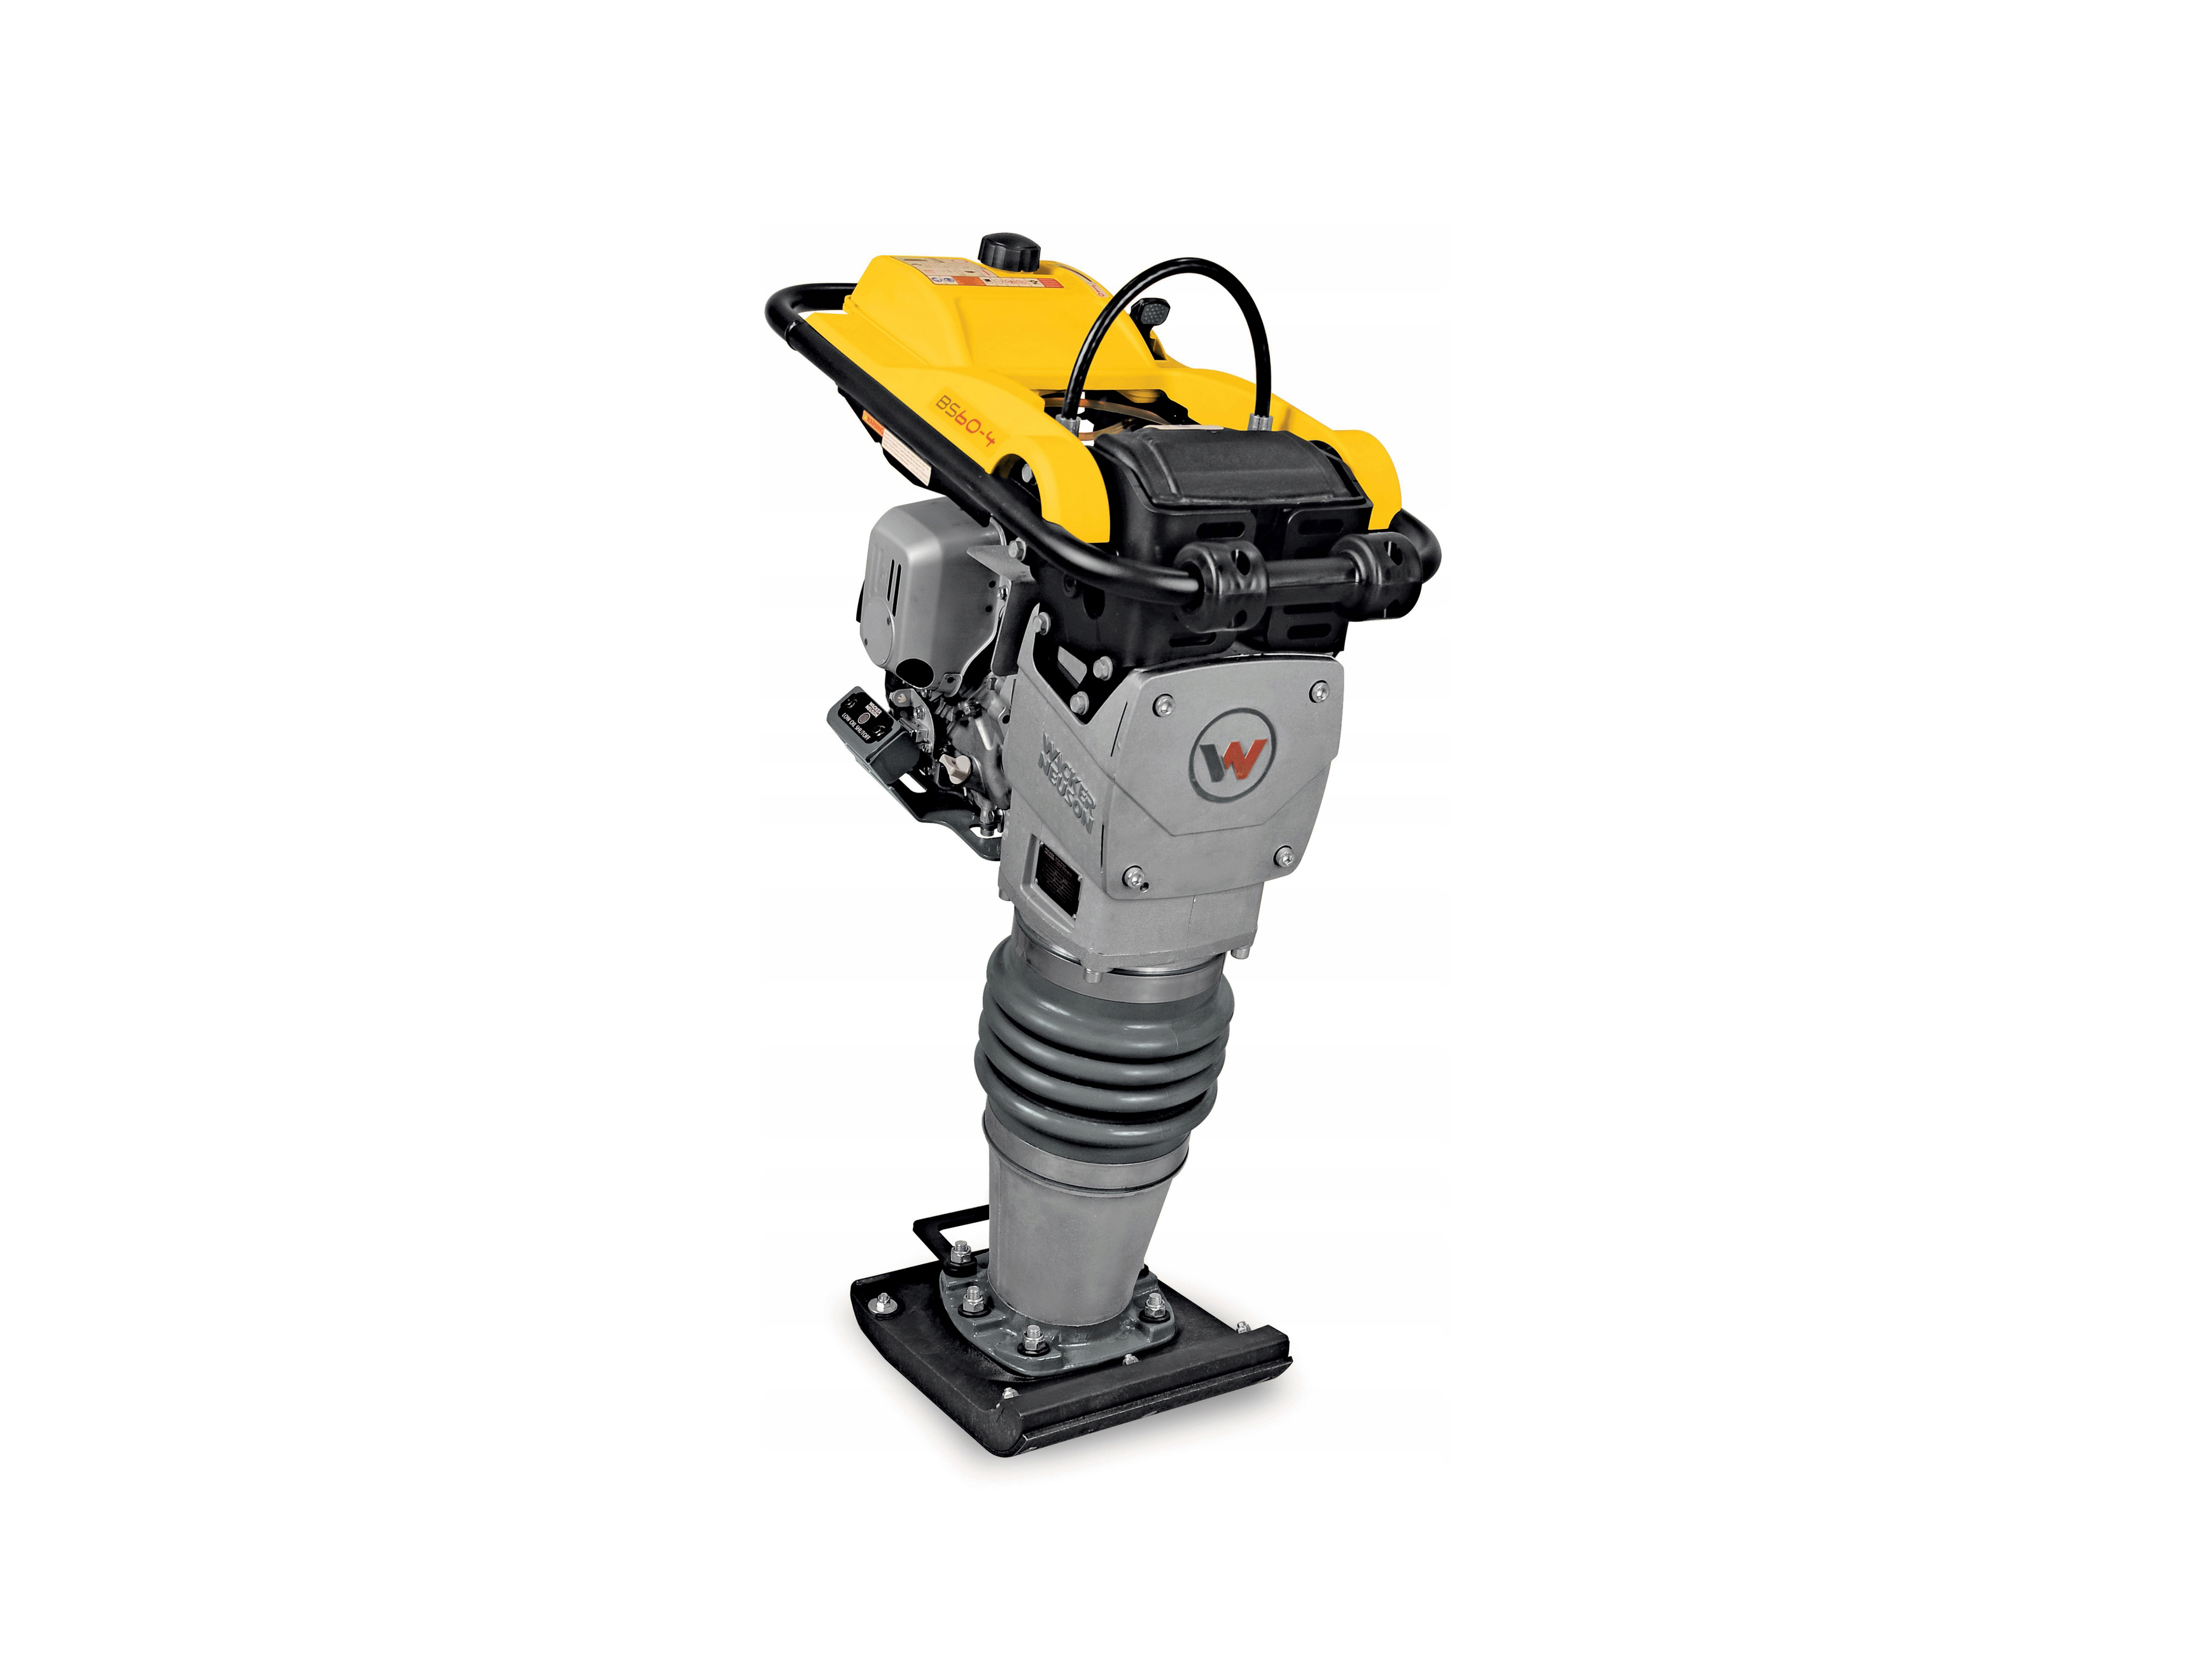 Вибротрамбовка бензиновая Wacker Neuson BS 60-4As 72кг